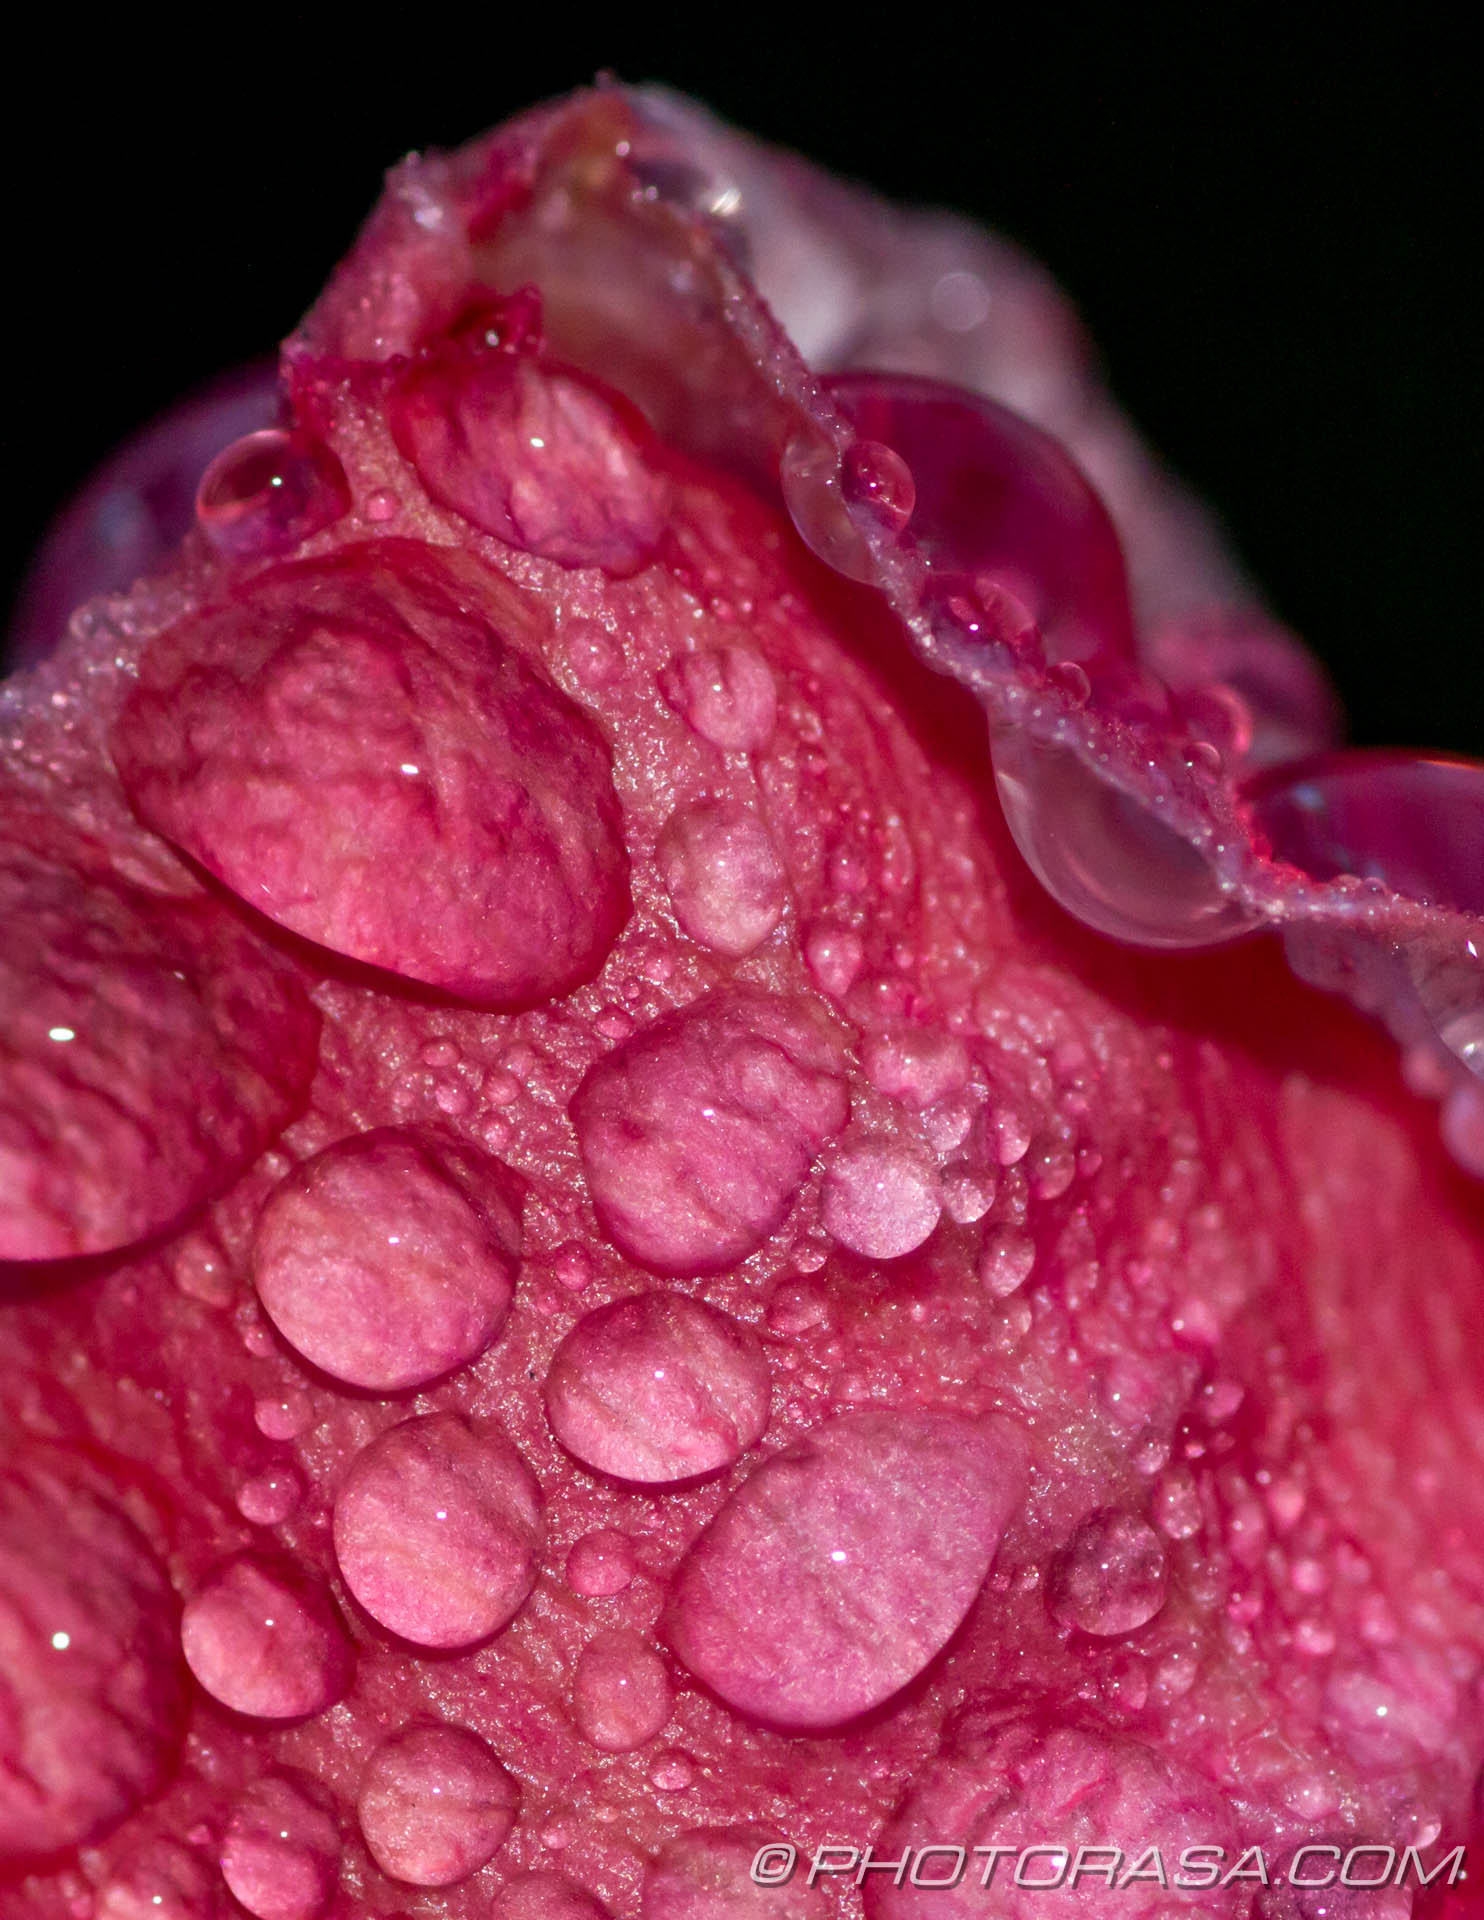 https://photorasa.com/pink-rose-in-the-rain/meaty-pink-rose-and-water-drops/